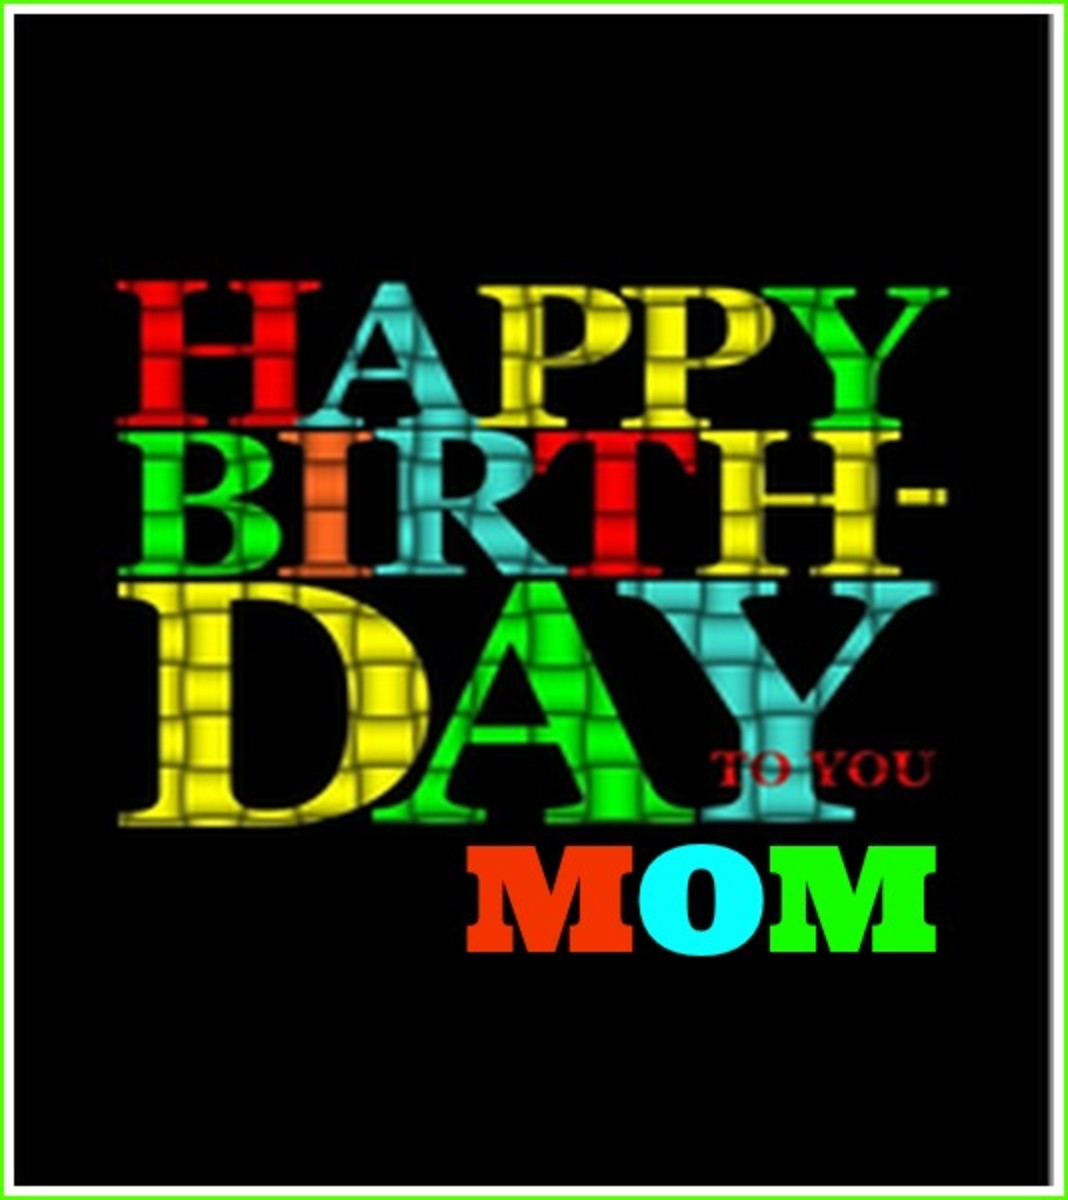 Happy Birthday to Mom Funny Card